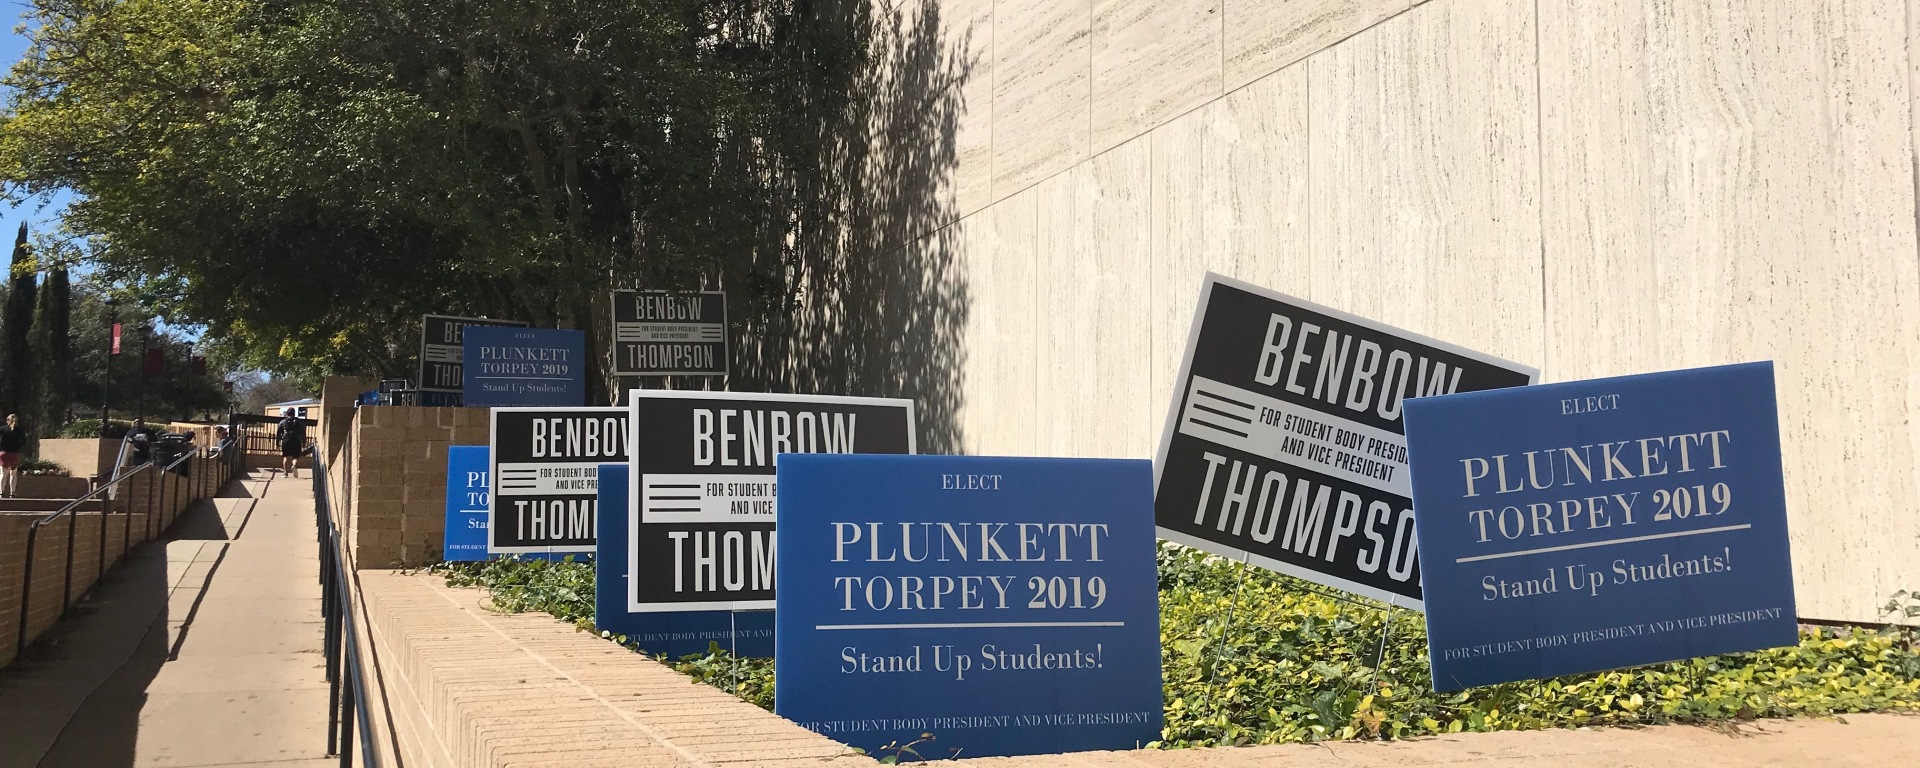 Campaign signs posted with candidates' names on them in landscape next to walkway ramp.